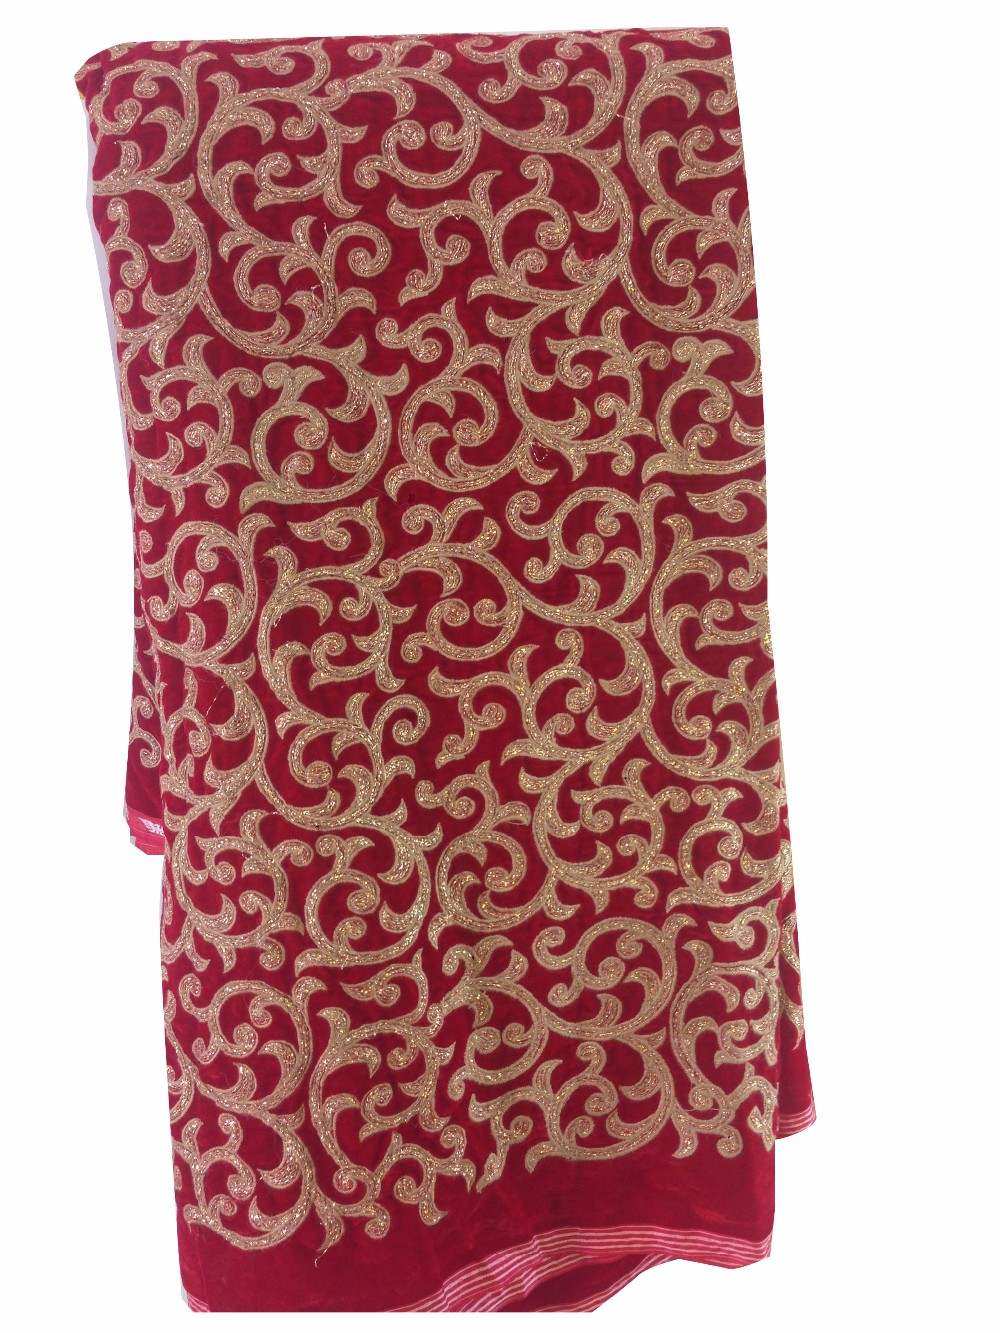 Ultra Soft Red velvet Embroidery wedding indian wholesale fabric; best selling fabric for women apparel clothes, bags F0005